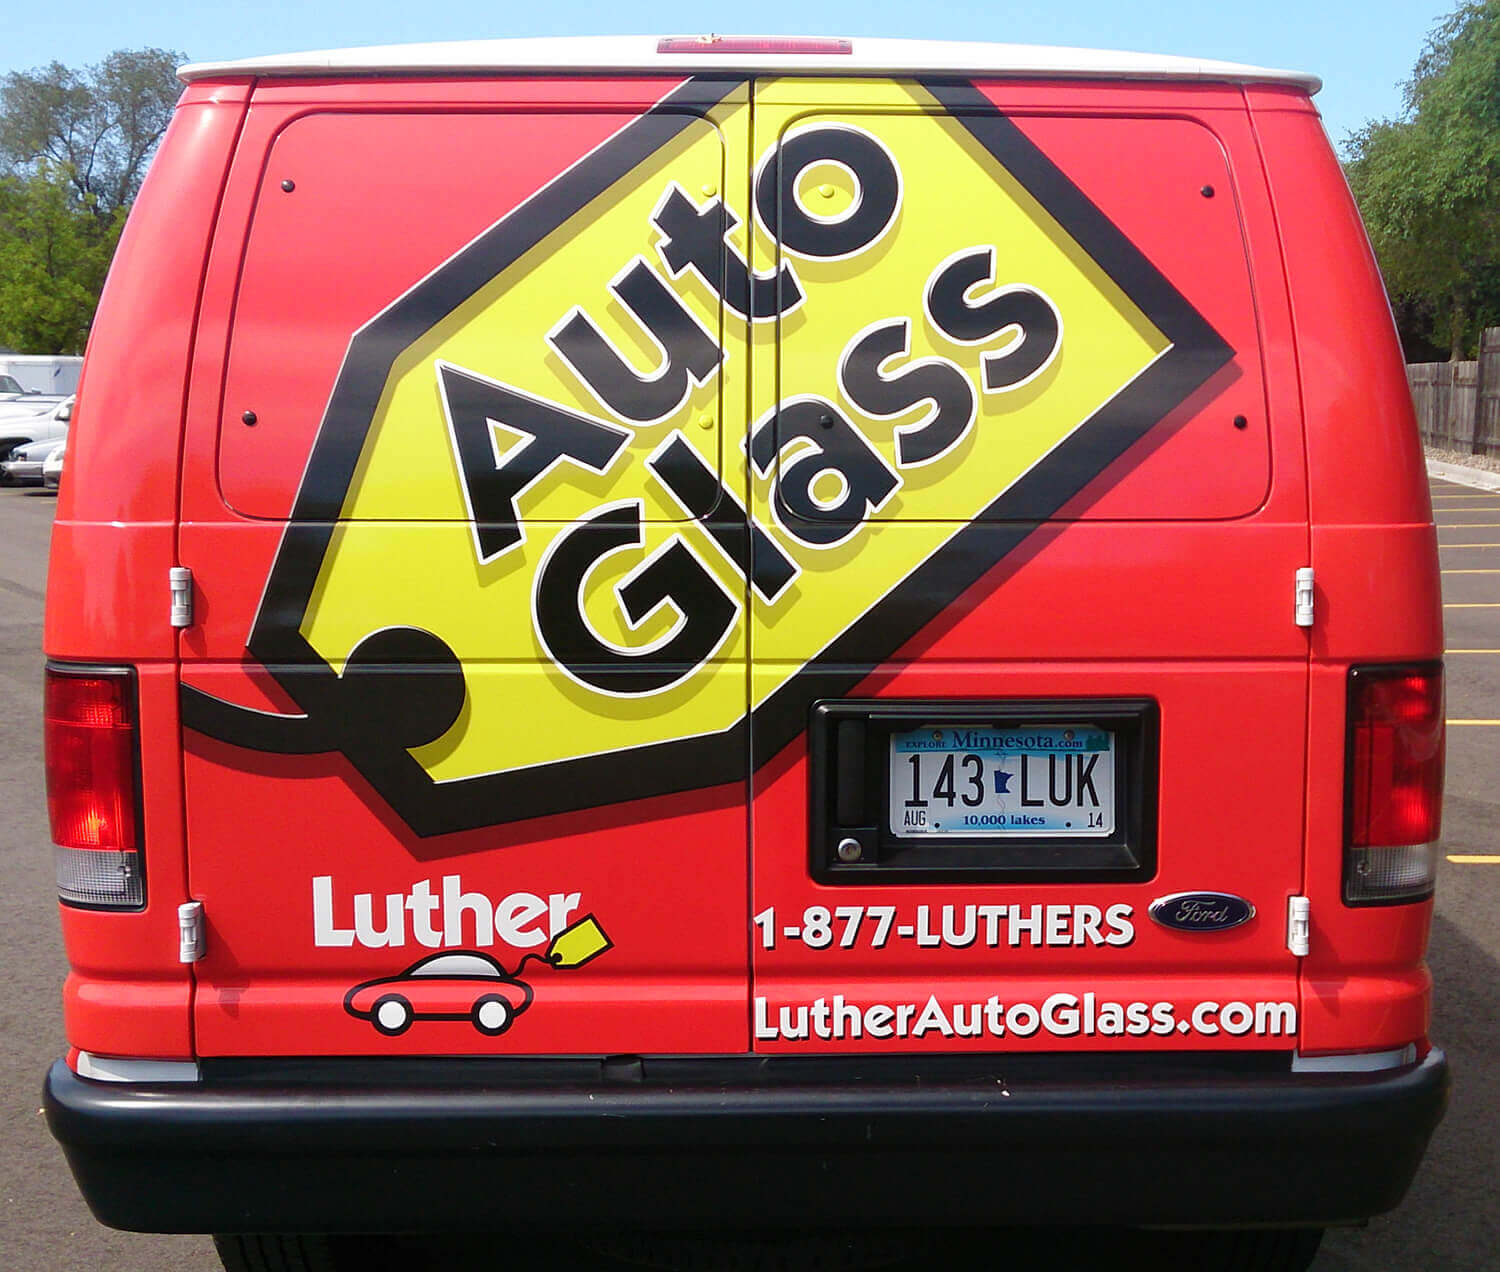 Luther Auto Glass Vehicle Wrap - Back